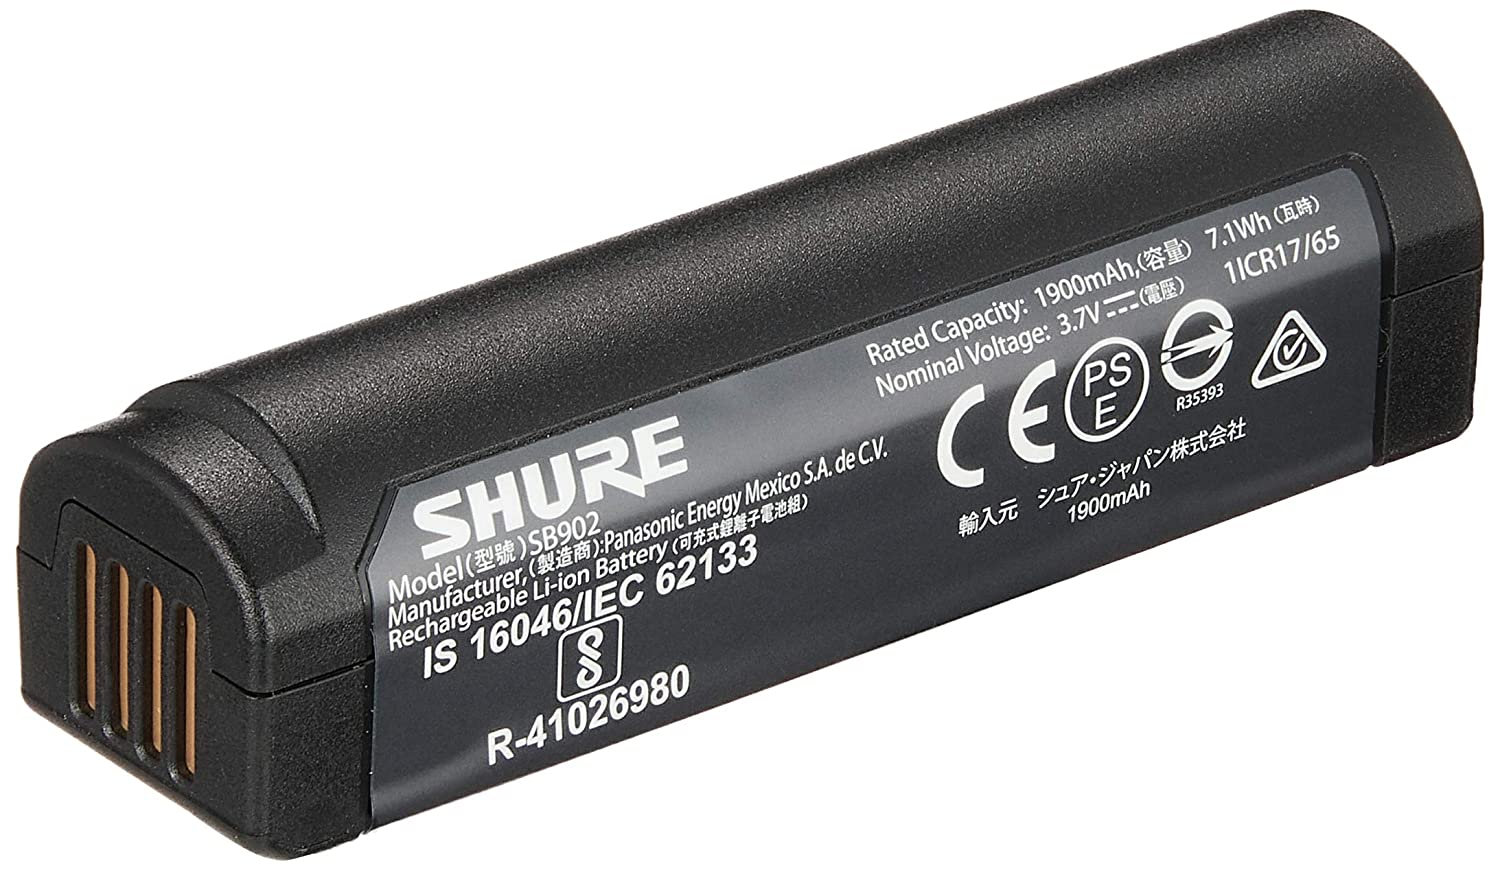 Lithium Ion Battery >> Shure Sb902 Rechargeable Lithium Ion Battery For Glx D